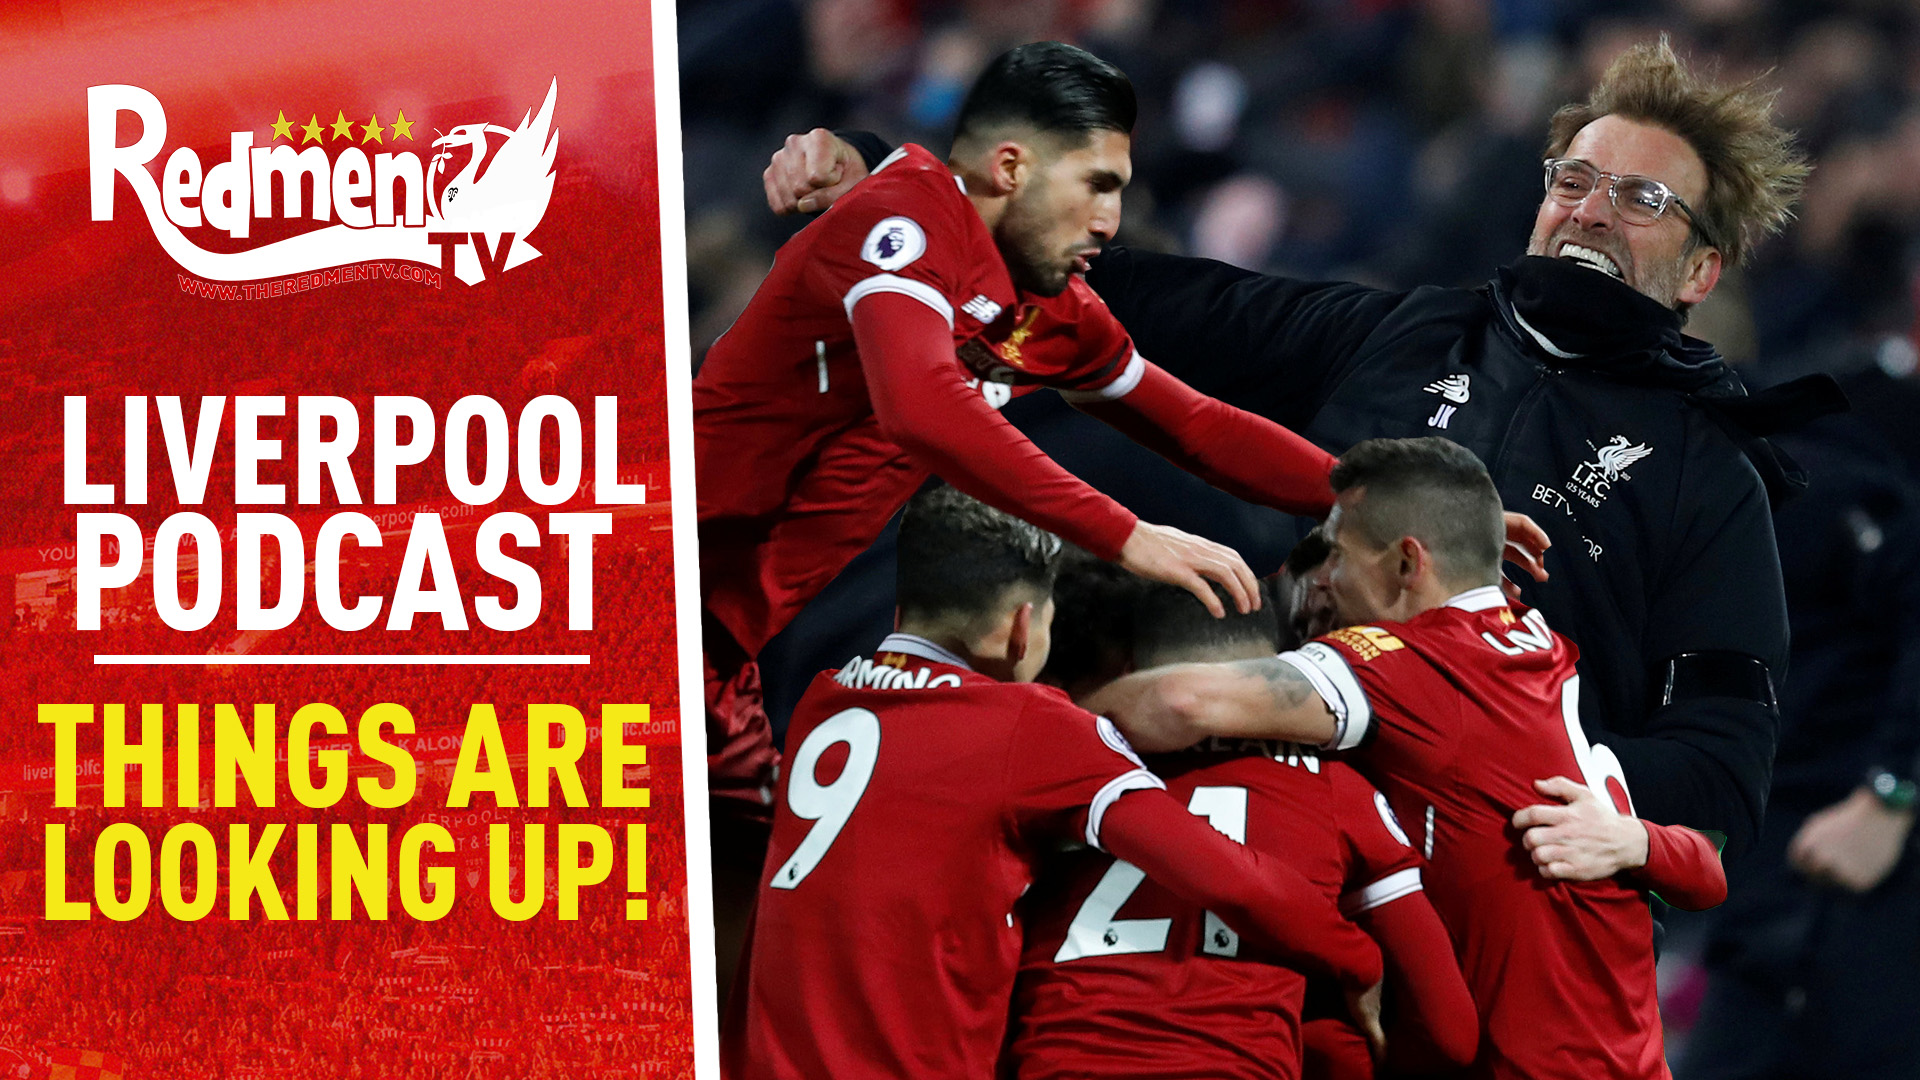 📹🏆 THINGS ARE LOOKING UP! | LIVERPOOL FC VIDEO PODCAST